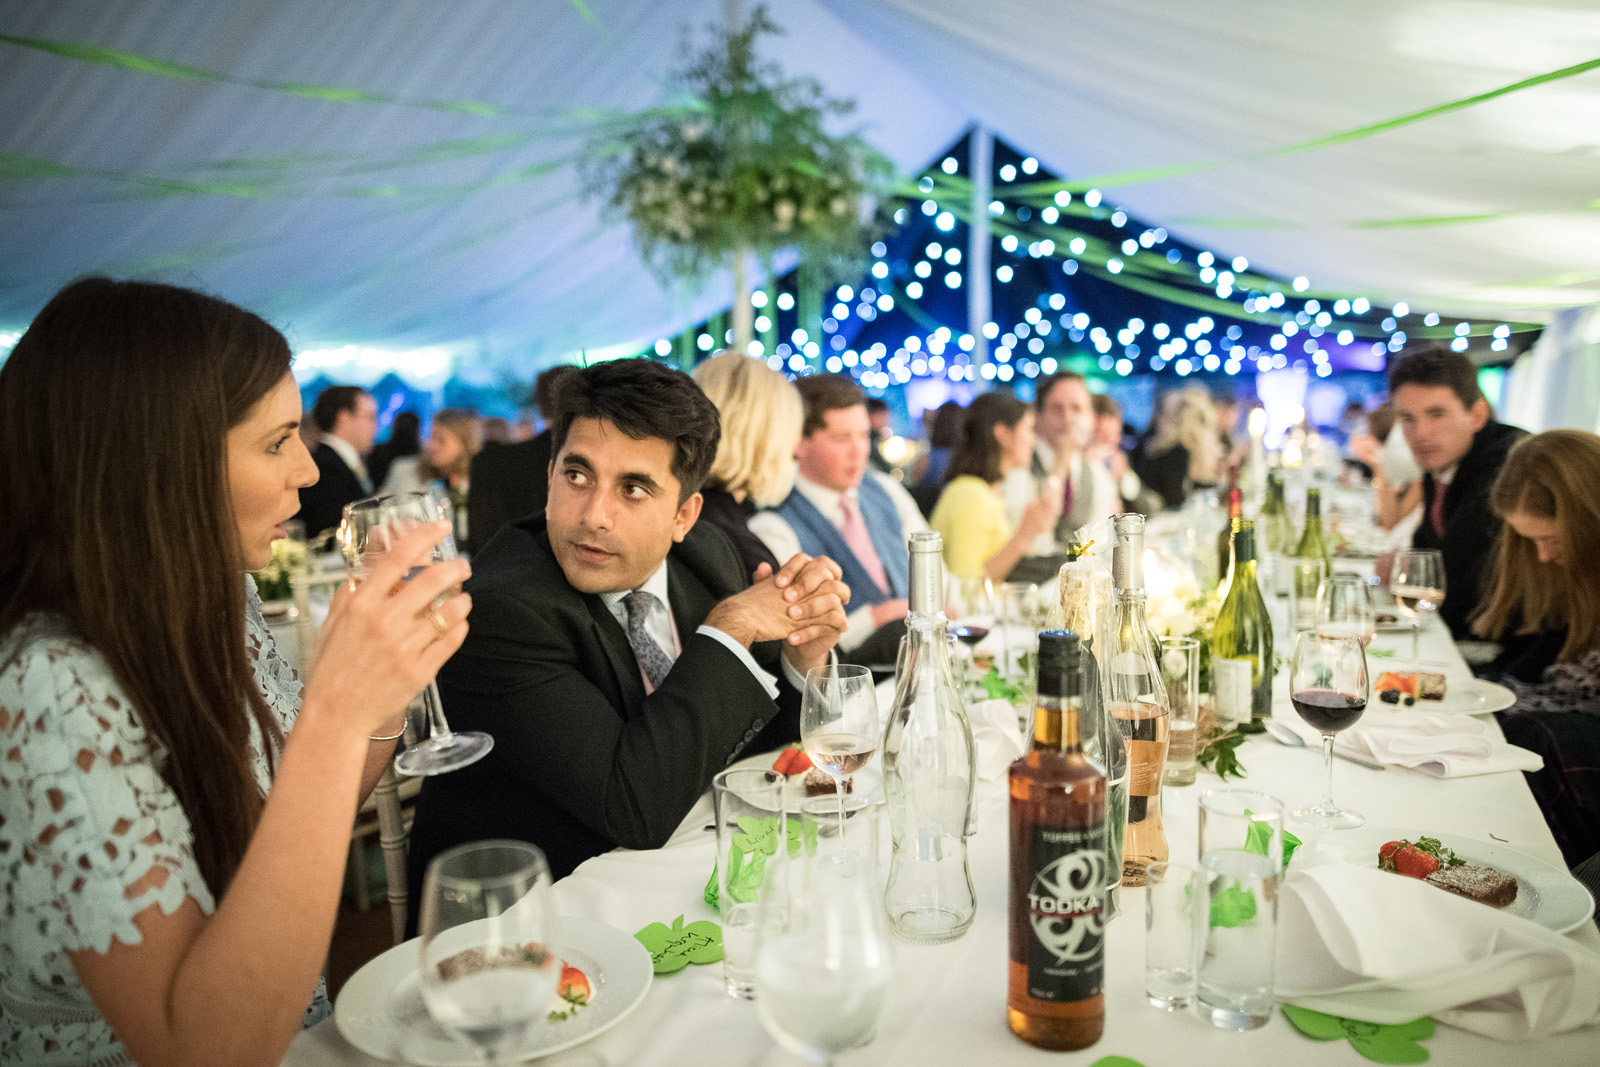 Guests enjoy the wedding breakfast in a Dorset Marquee